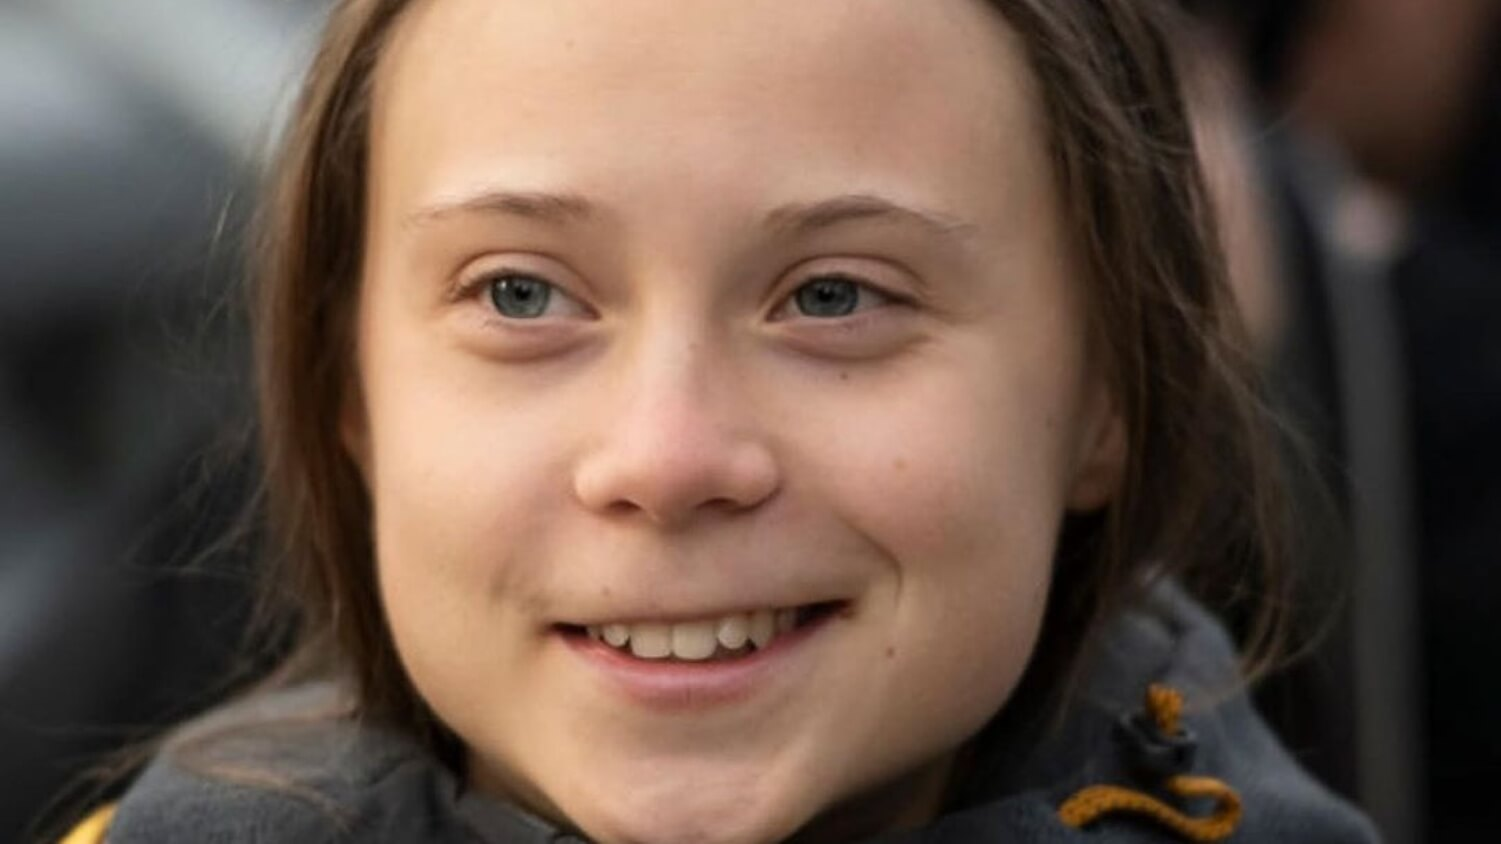 Scientists Name New Spider Species After Greta Thunberg